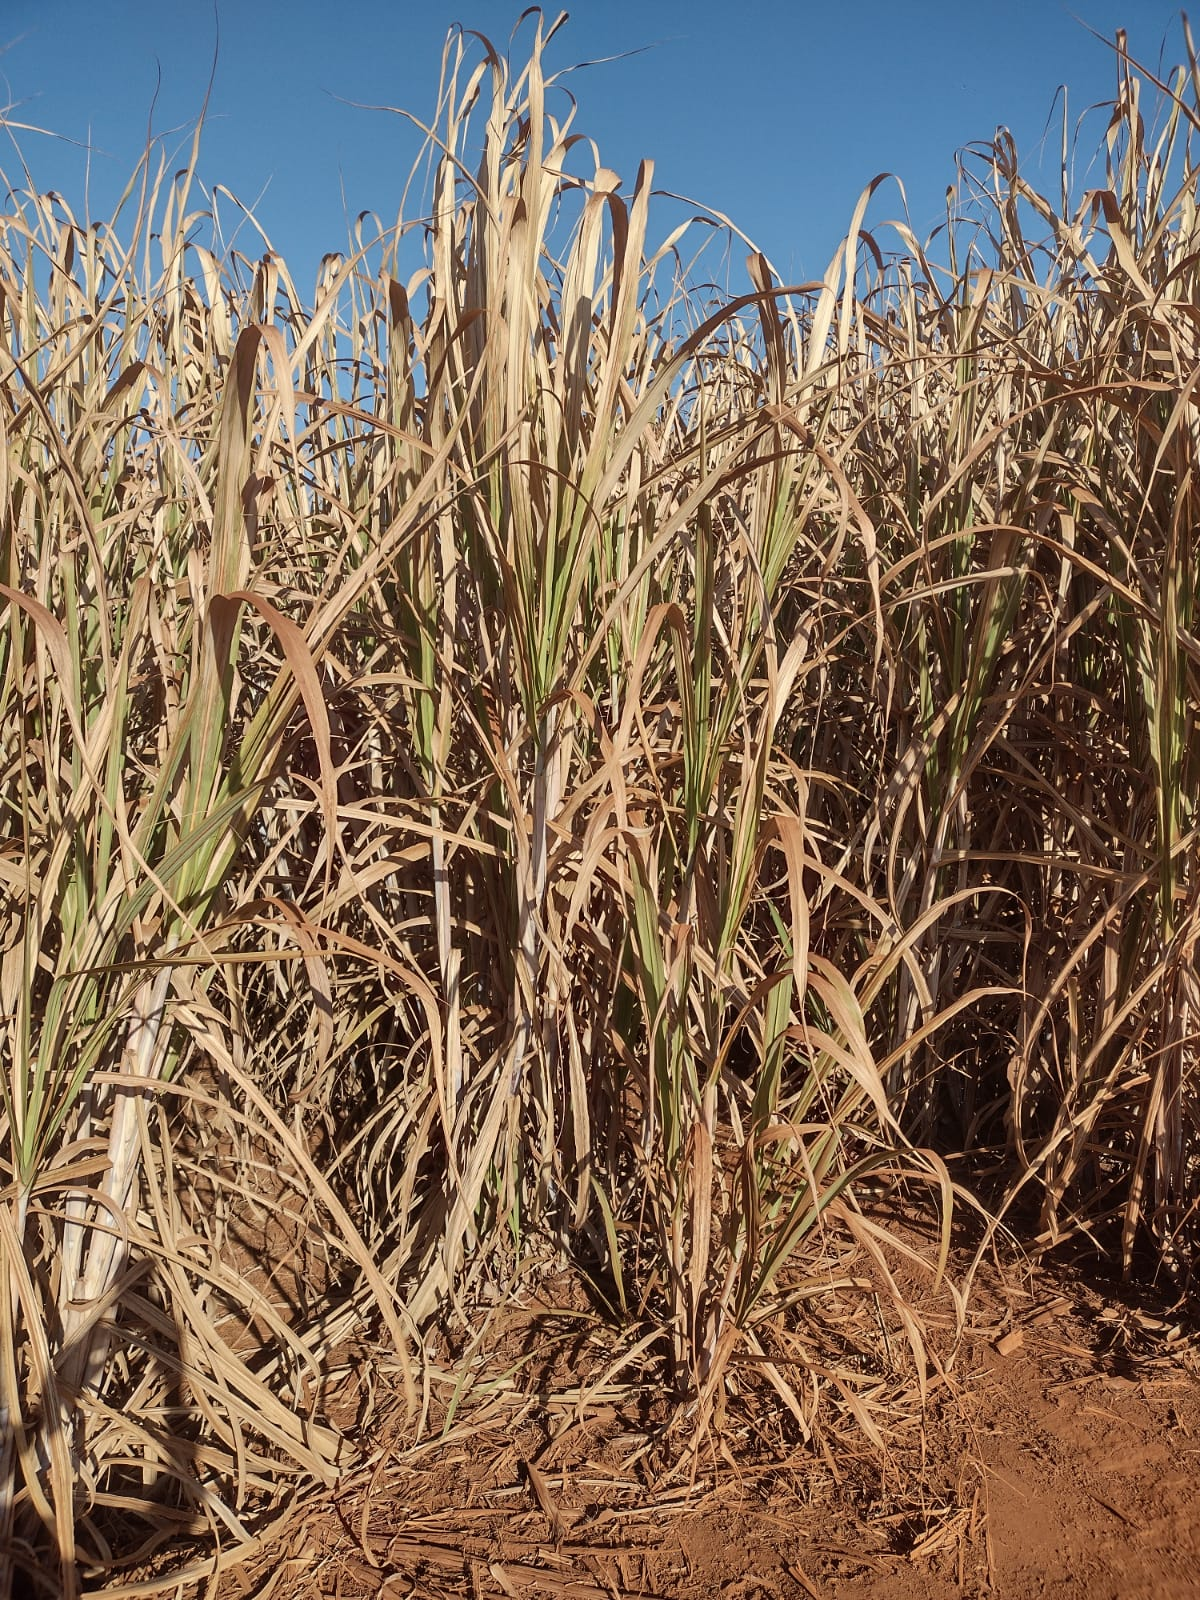 Dry sugarcane due to frost